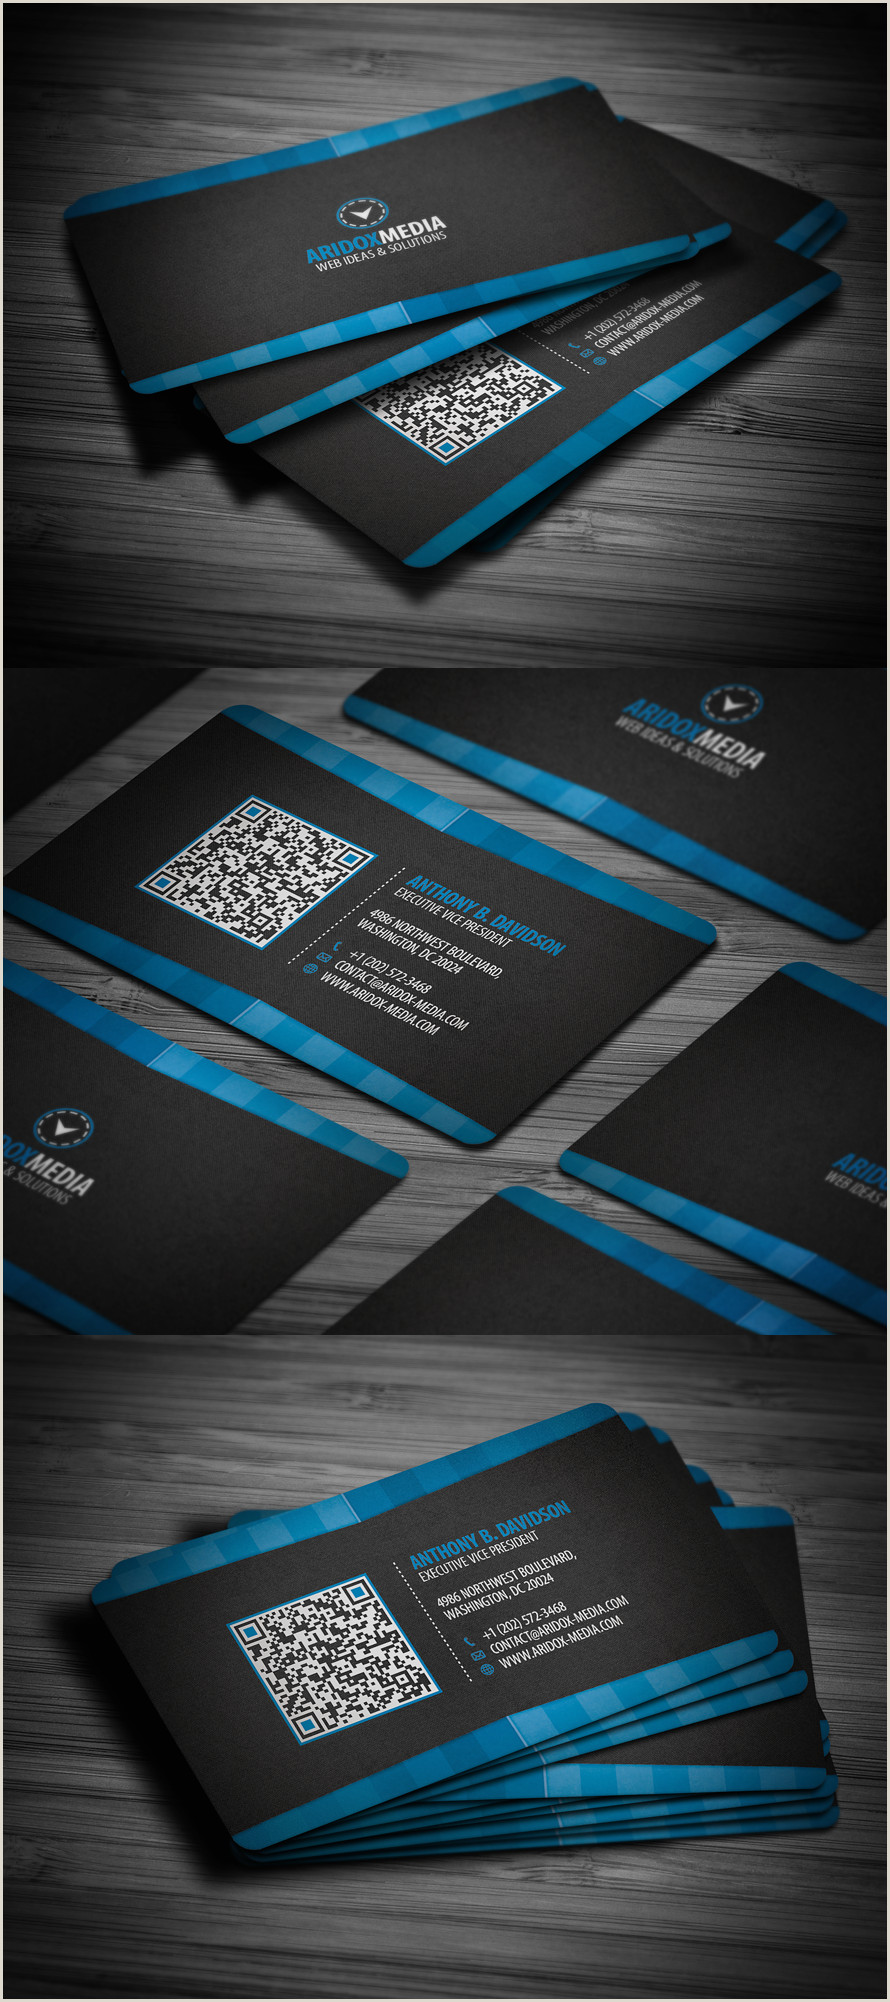 Best Website To Create Business Cards Professional Corporate Business Card By Flowpixel On